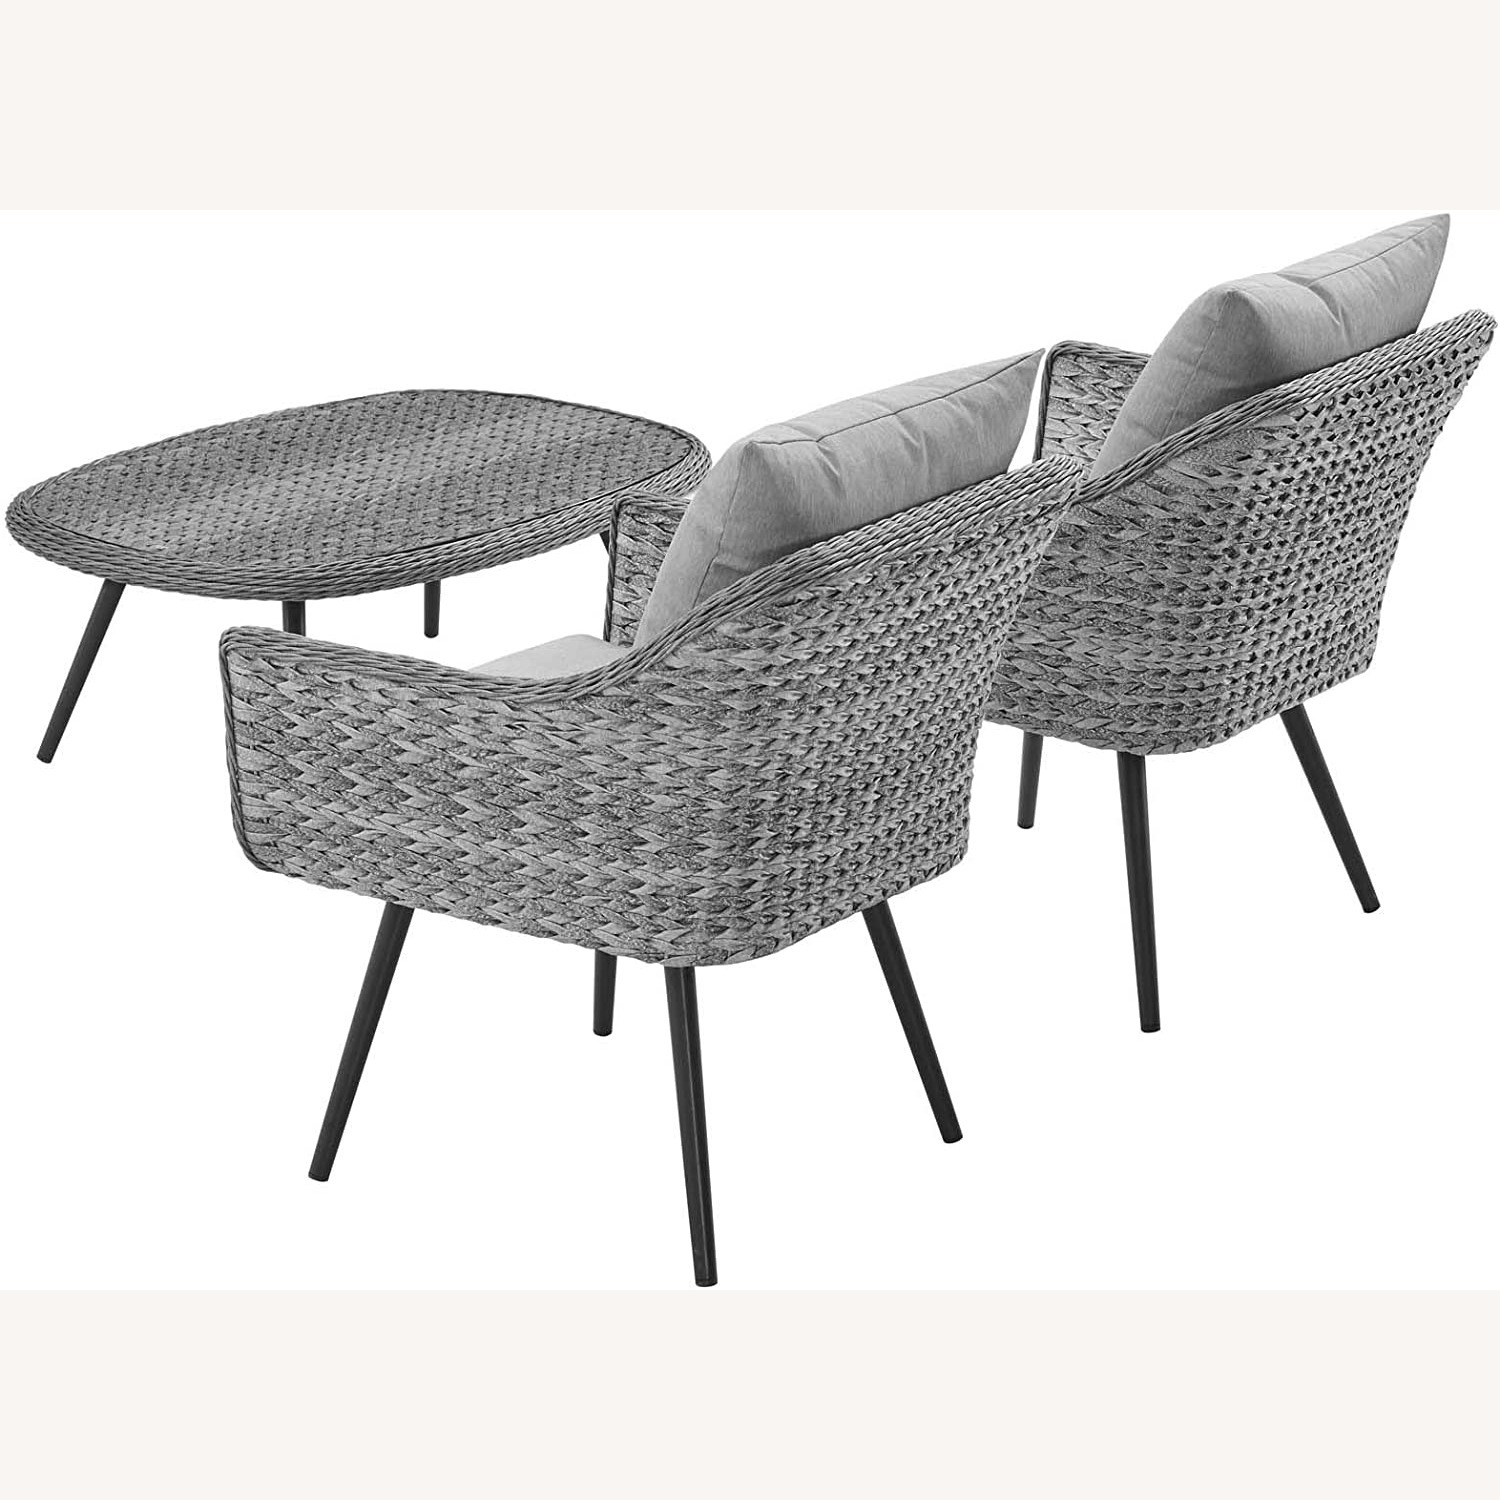 3-Piece Outdoor Sectional In Gray-On-Gray Tone - image-1